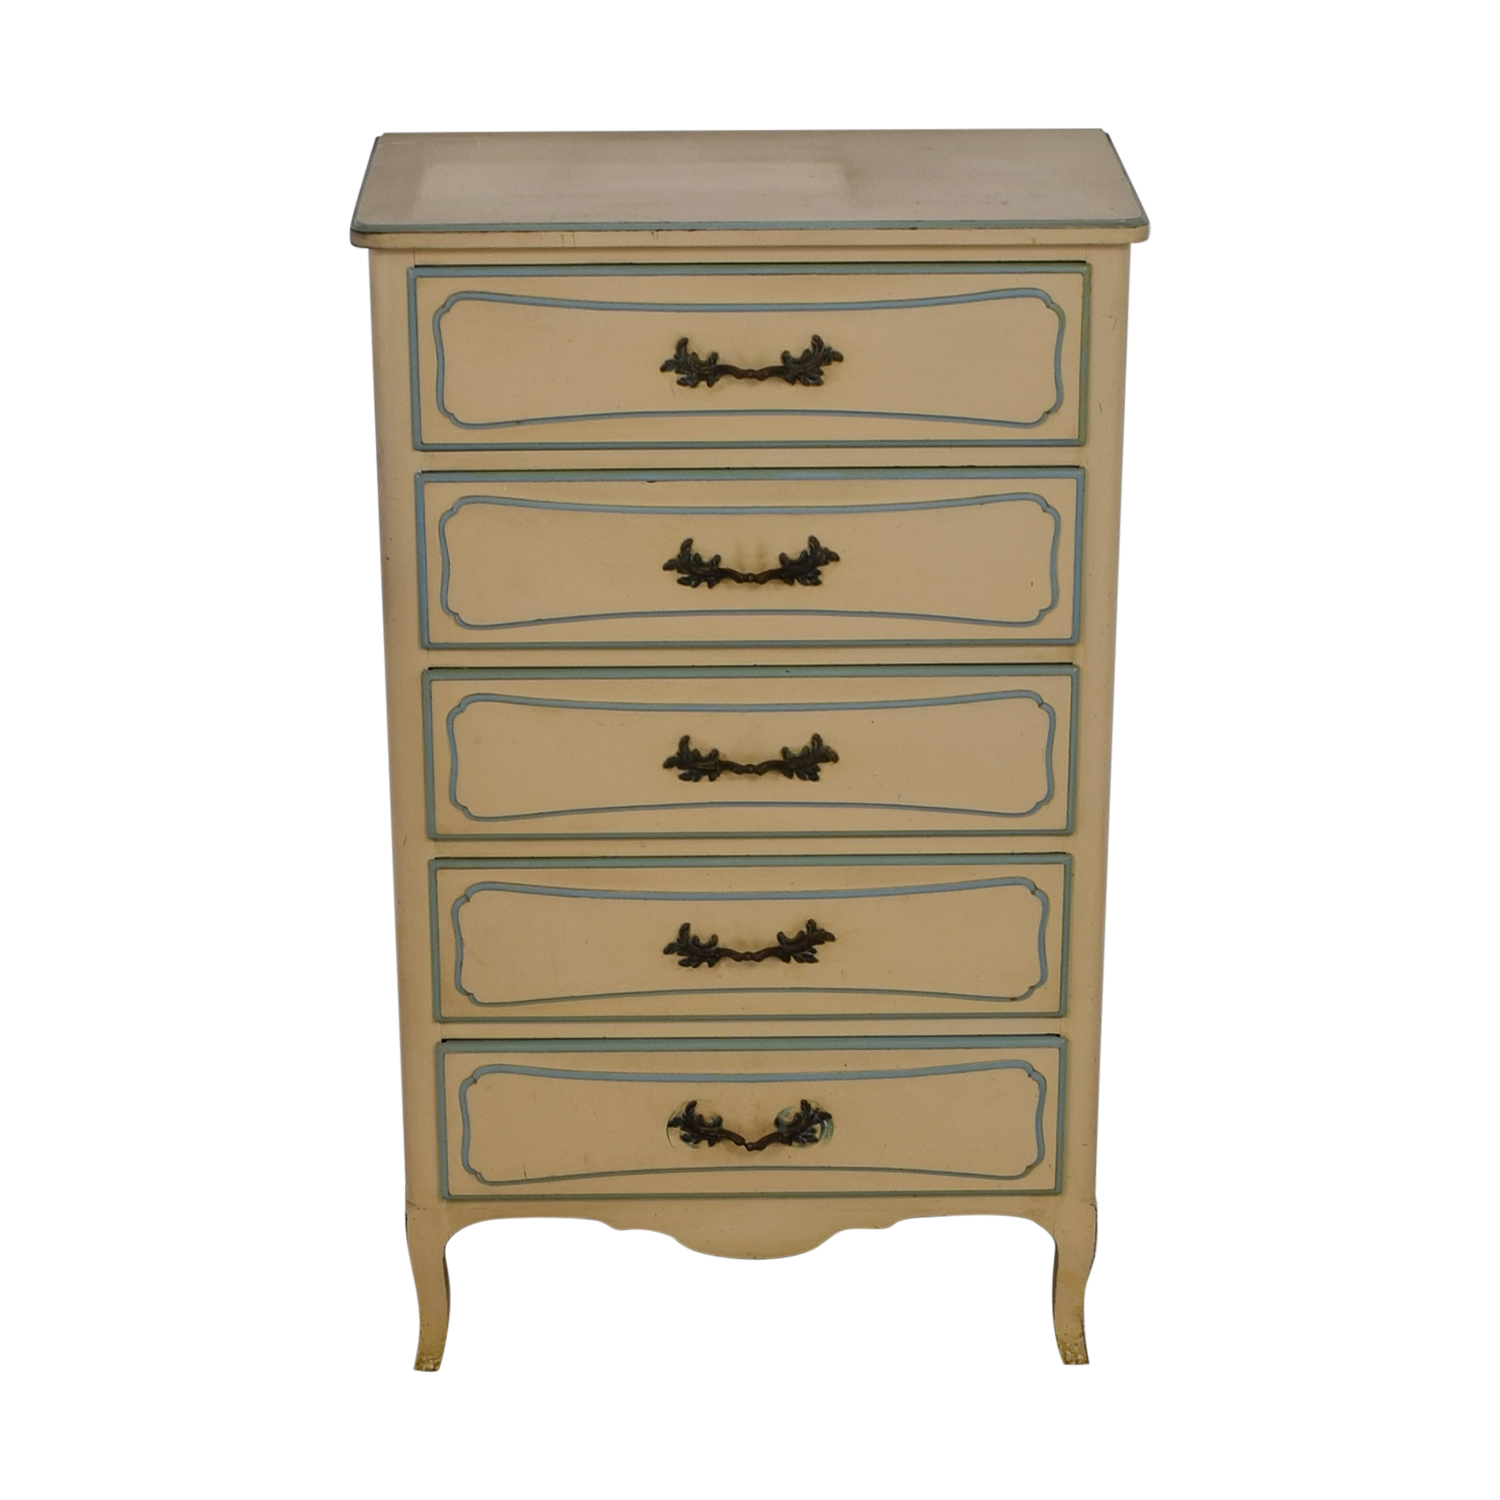 Custom Handmade Tall Five Drawer Dresser Green, White